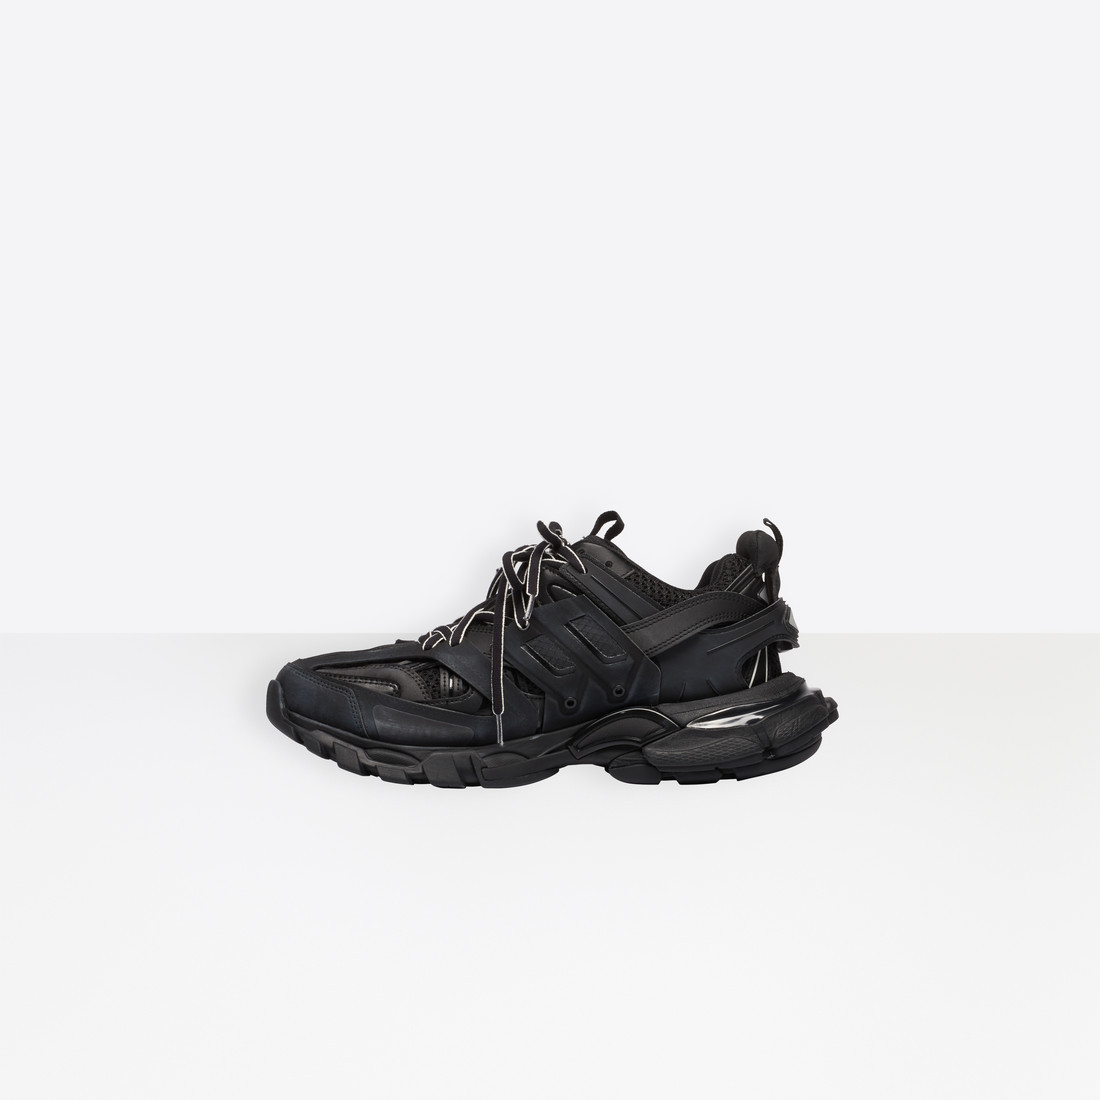 ▲Balenciaga。(圖/翻攝自Balenciaga、Sneakernews)